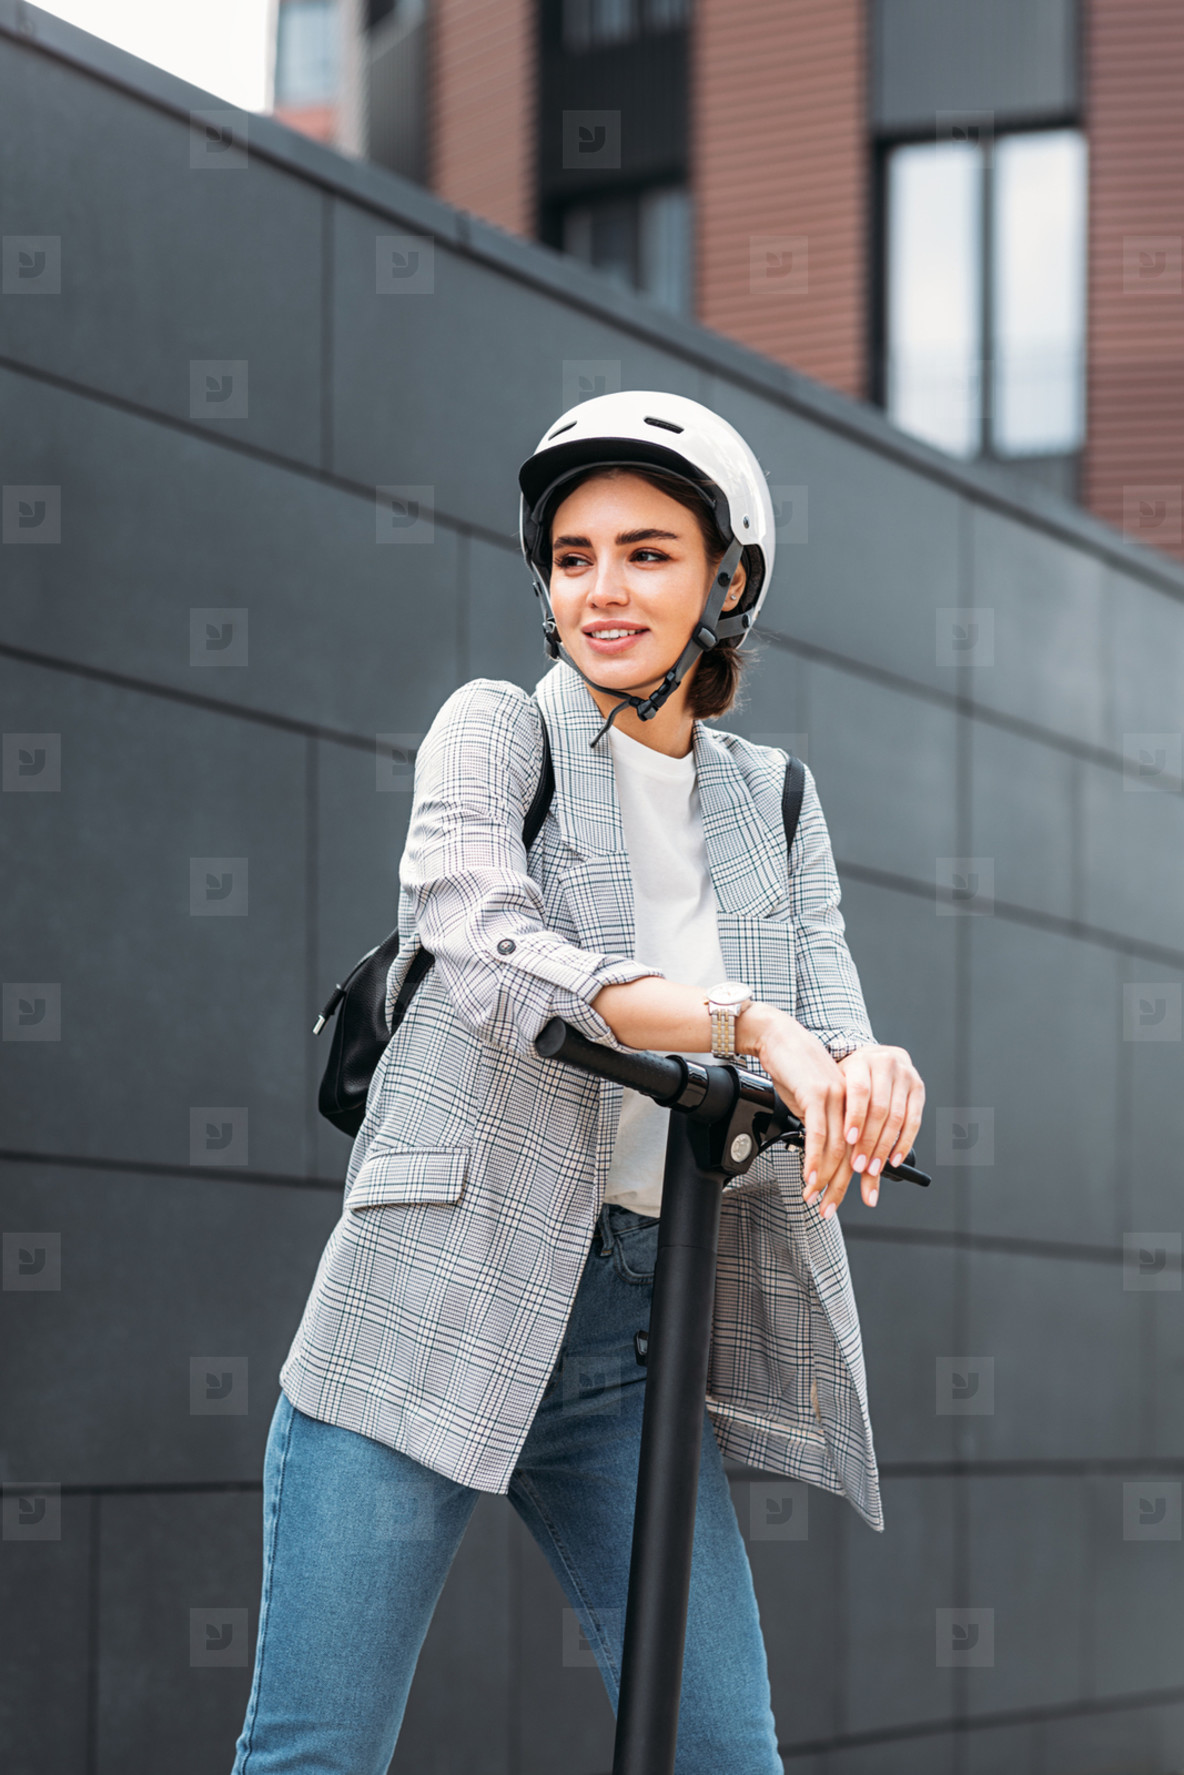 Businesswoman leaning on electric scooter and looking away  Portrait of young female holding scooter outdoors